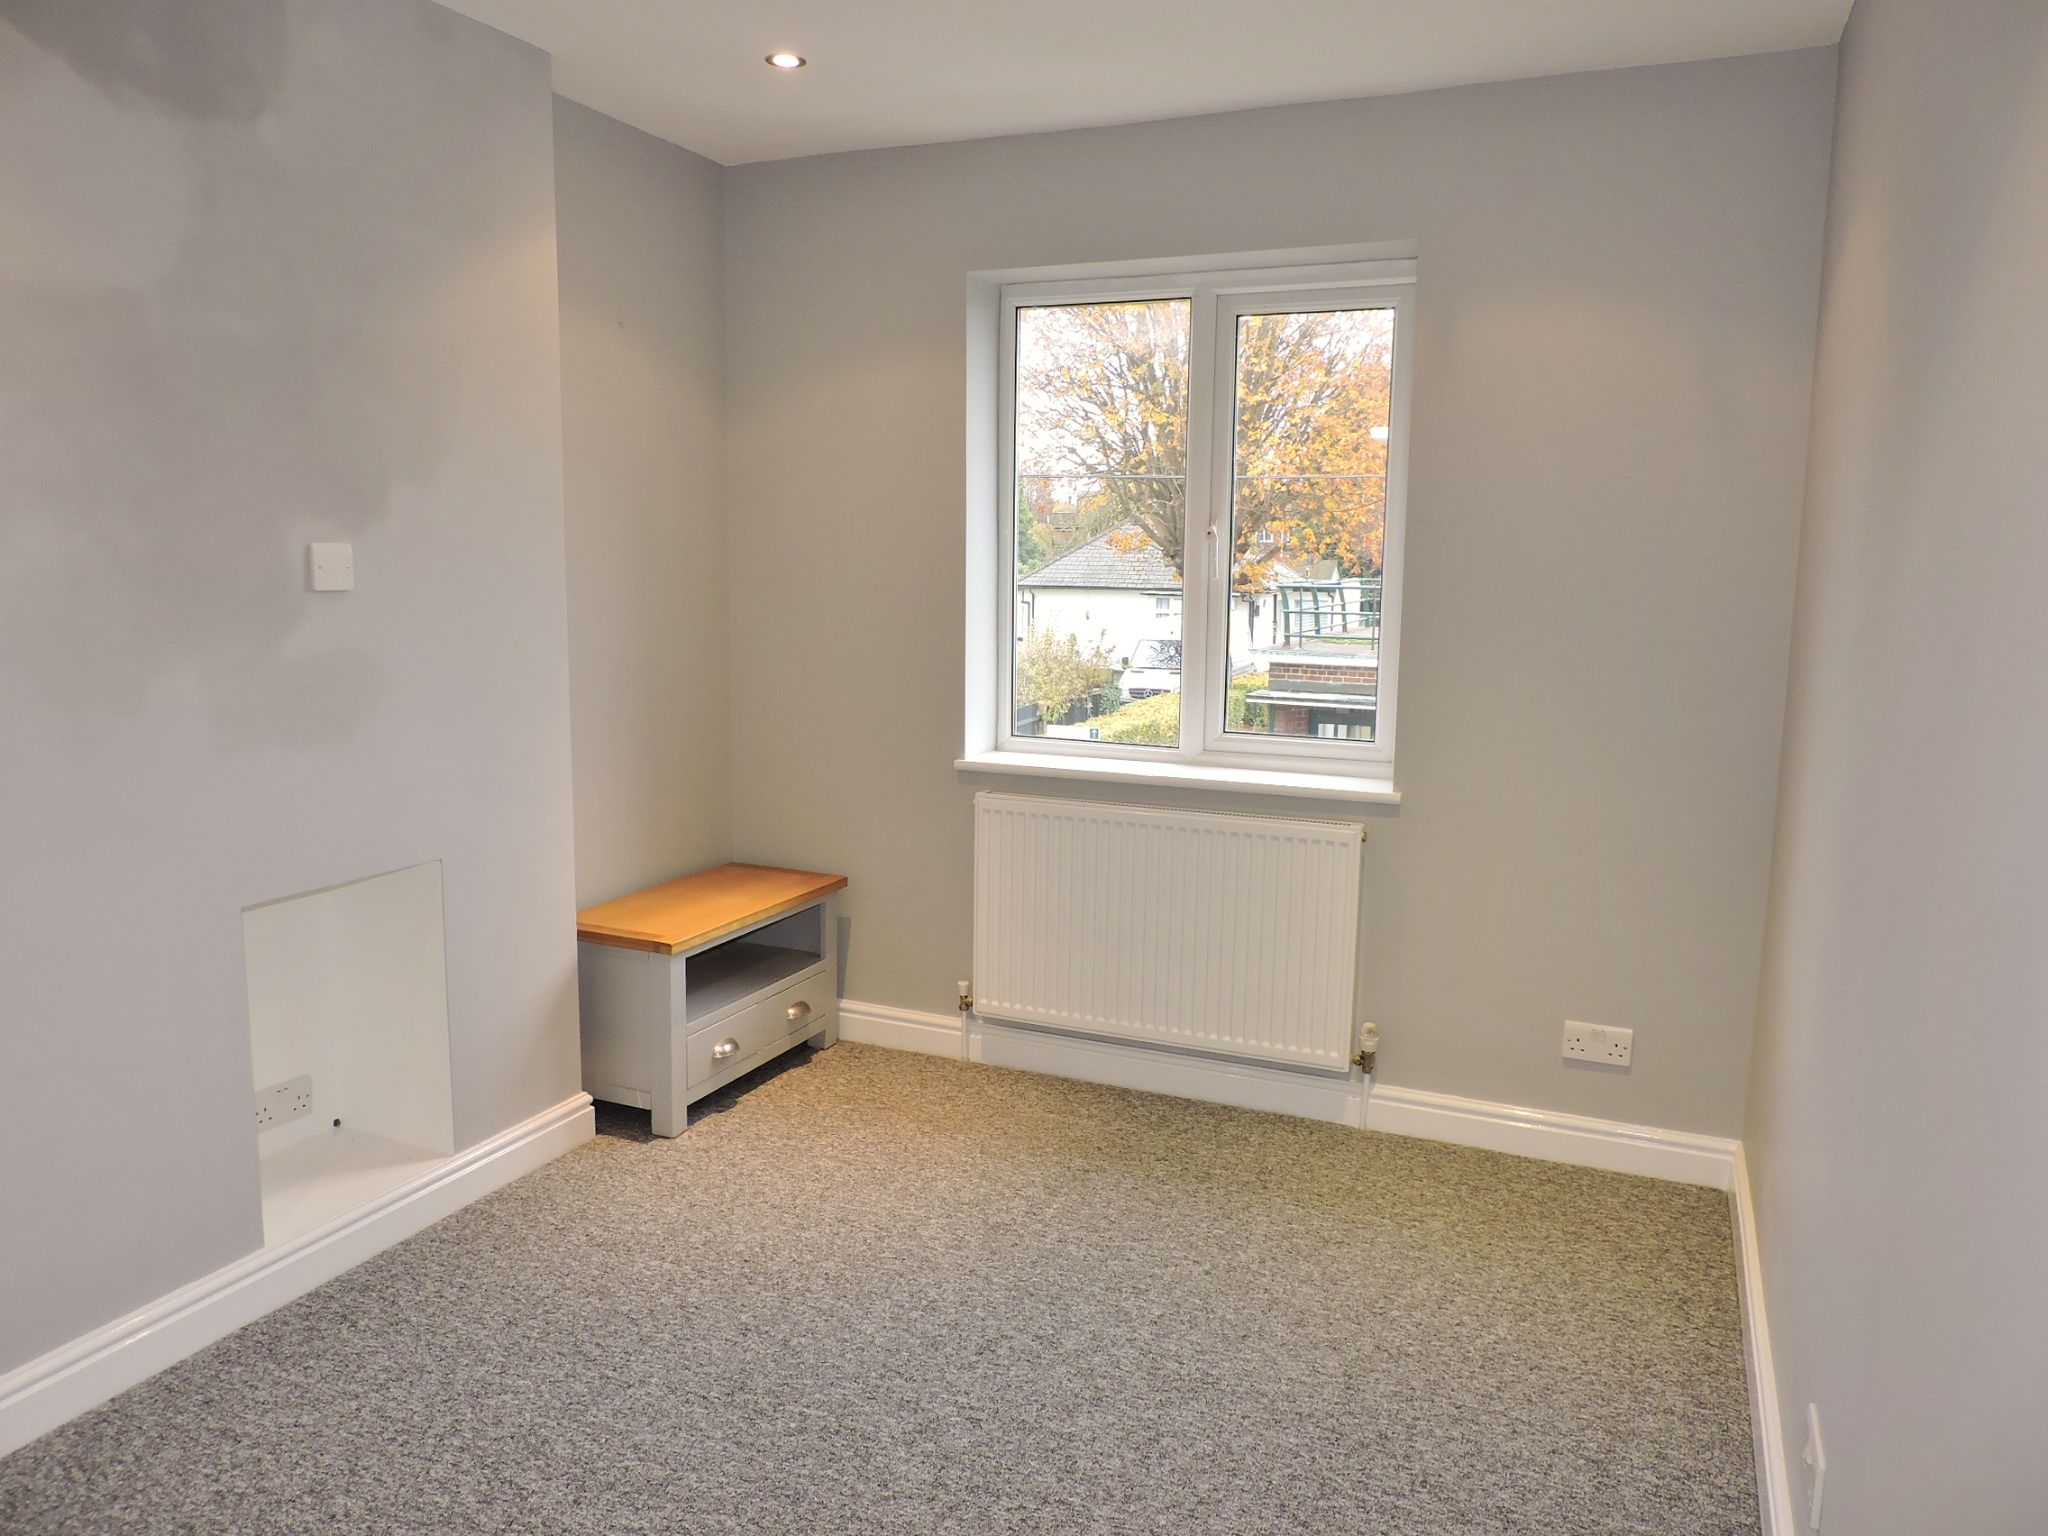 1 bedroom maisonette flat/apartment To Let in Cobham - Property photograph